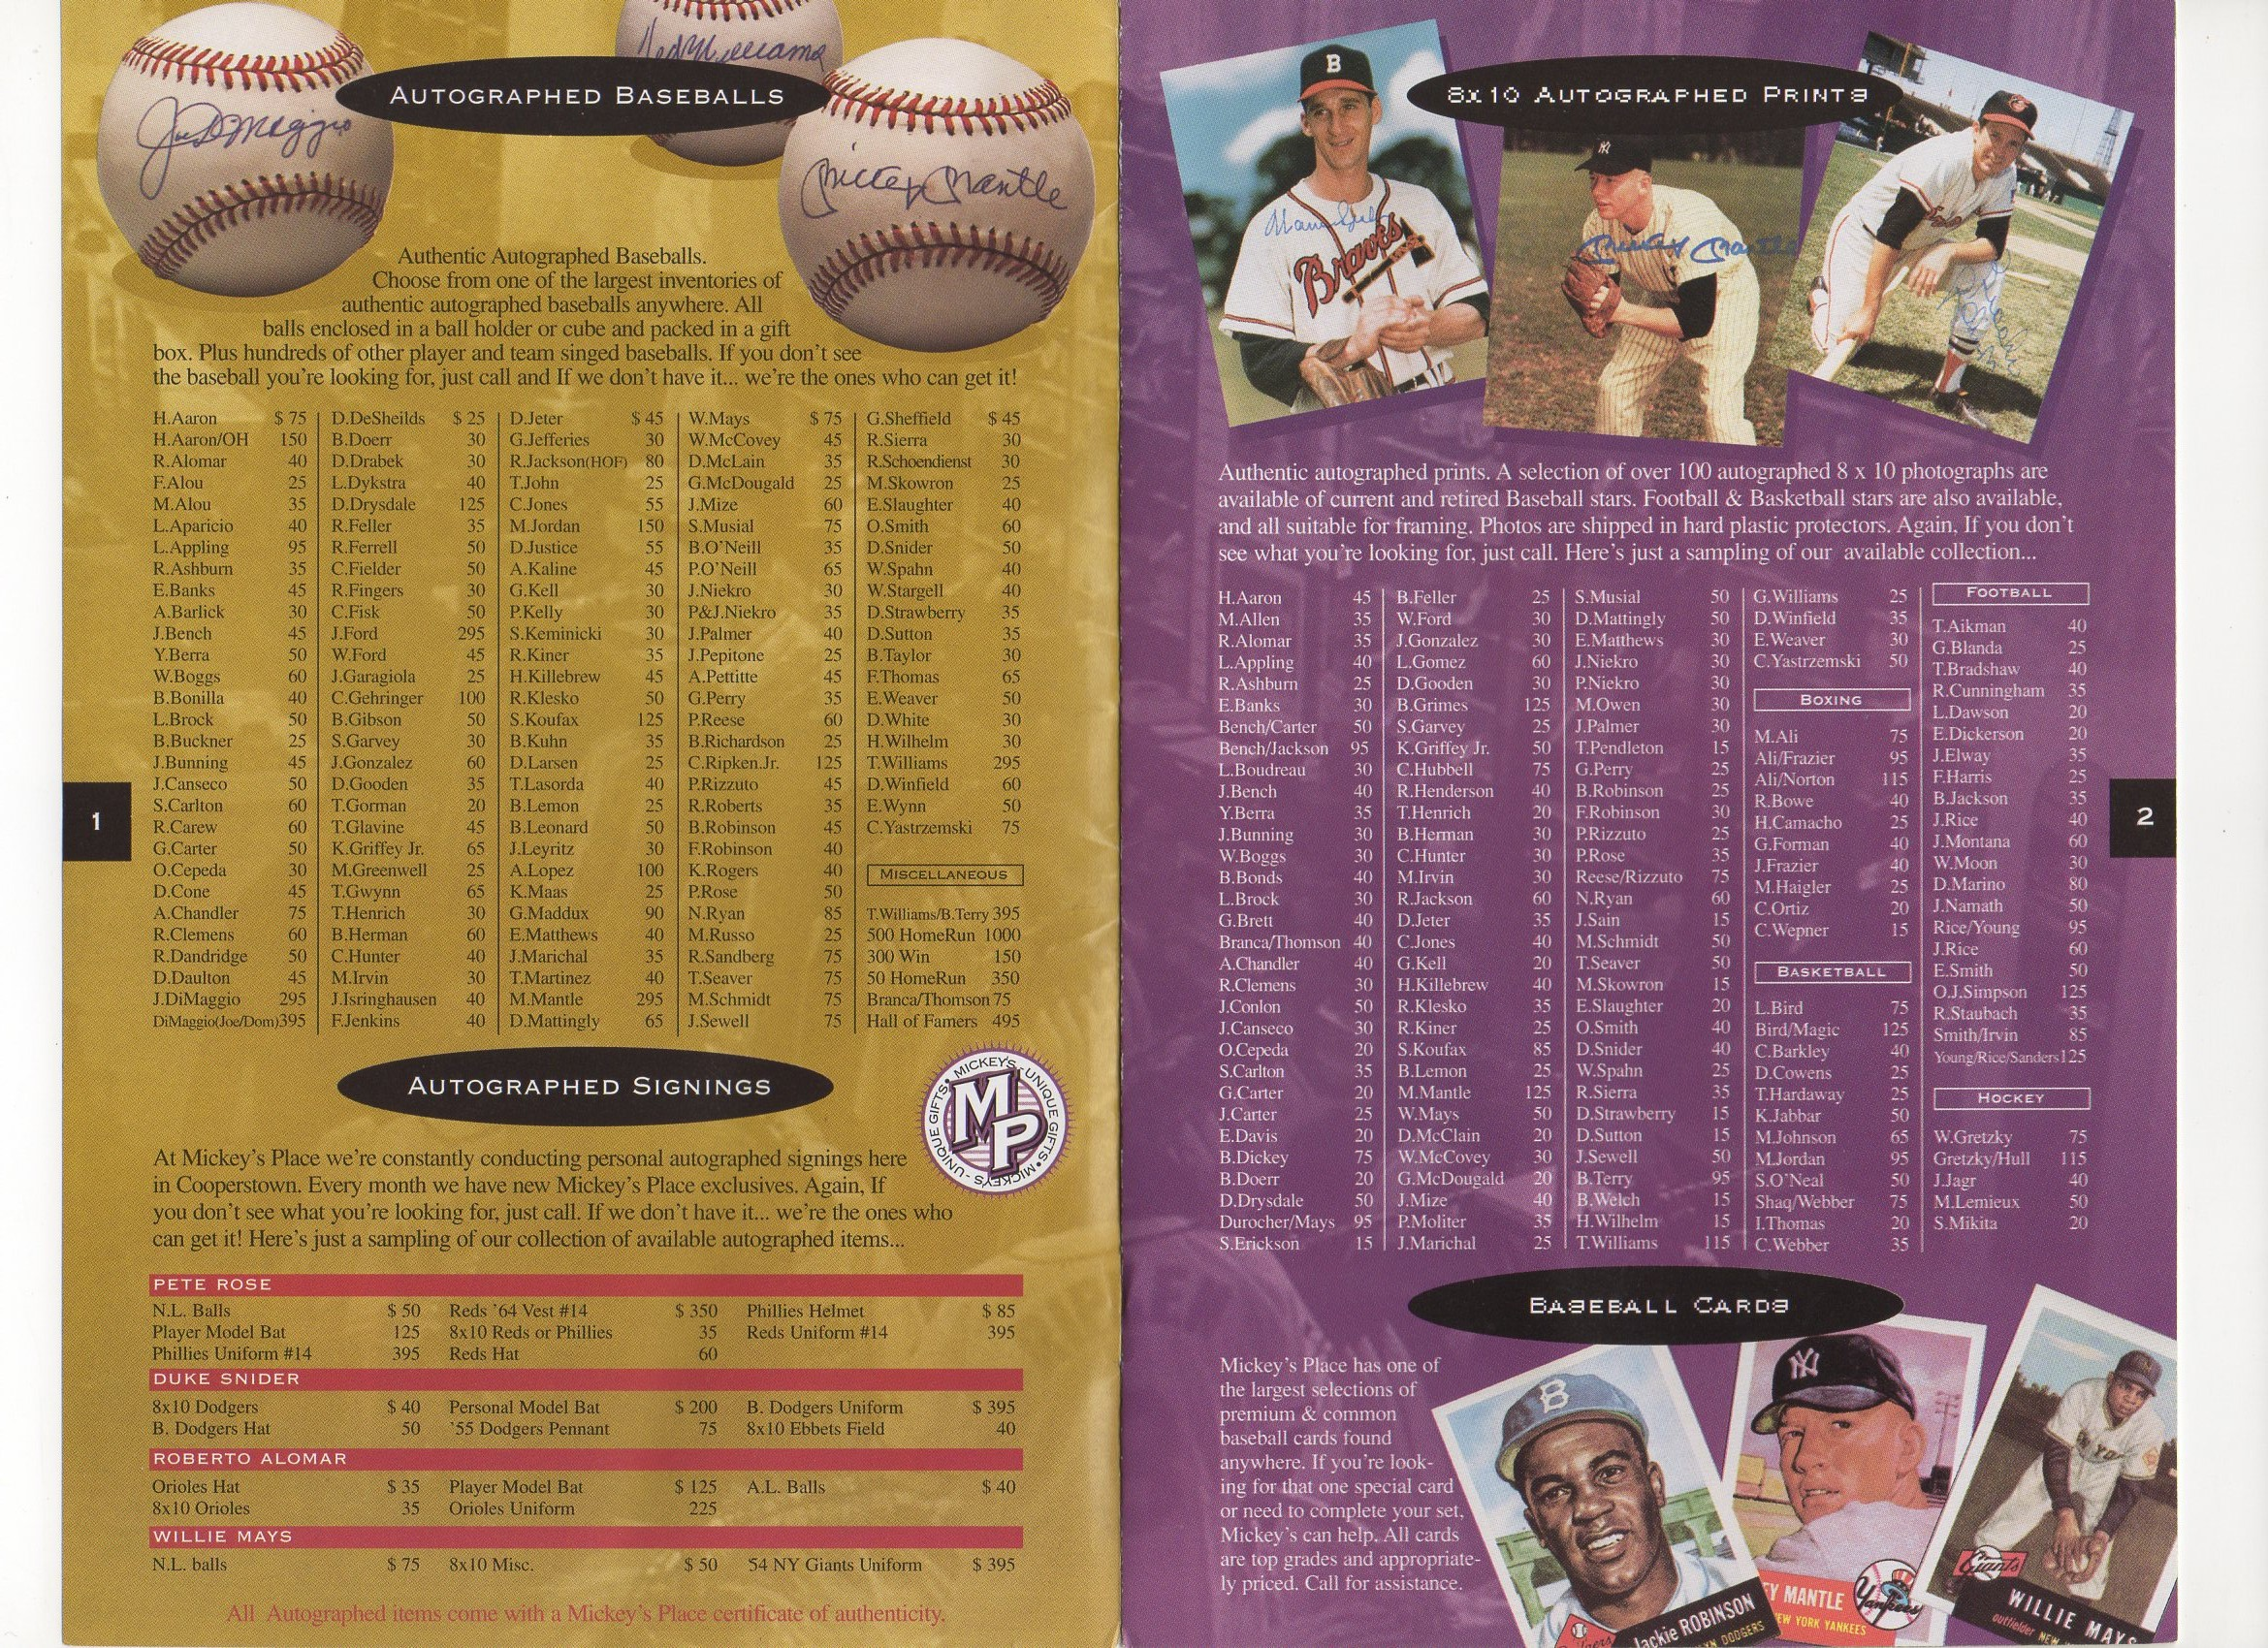 1996 mickey,s place cooperstown, n.y. booklet